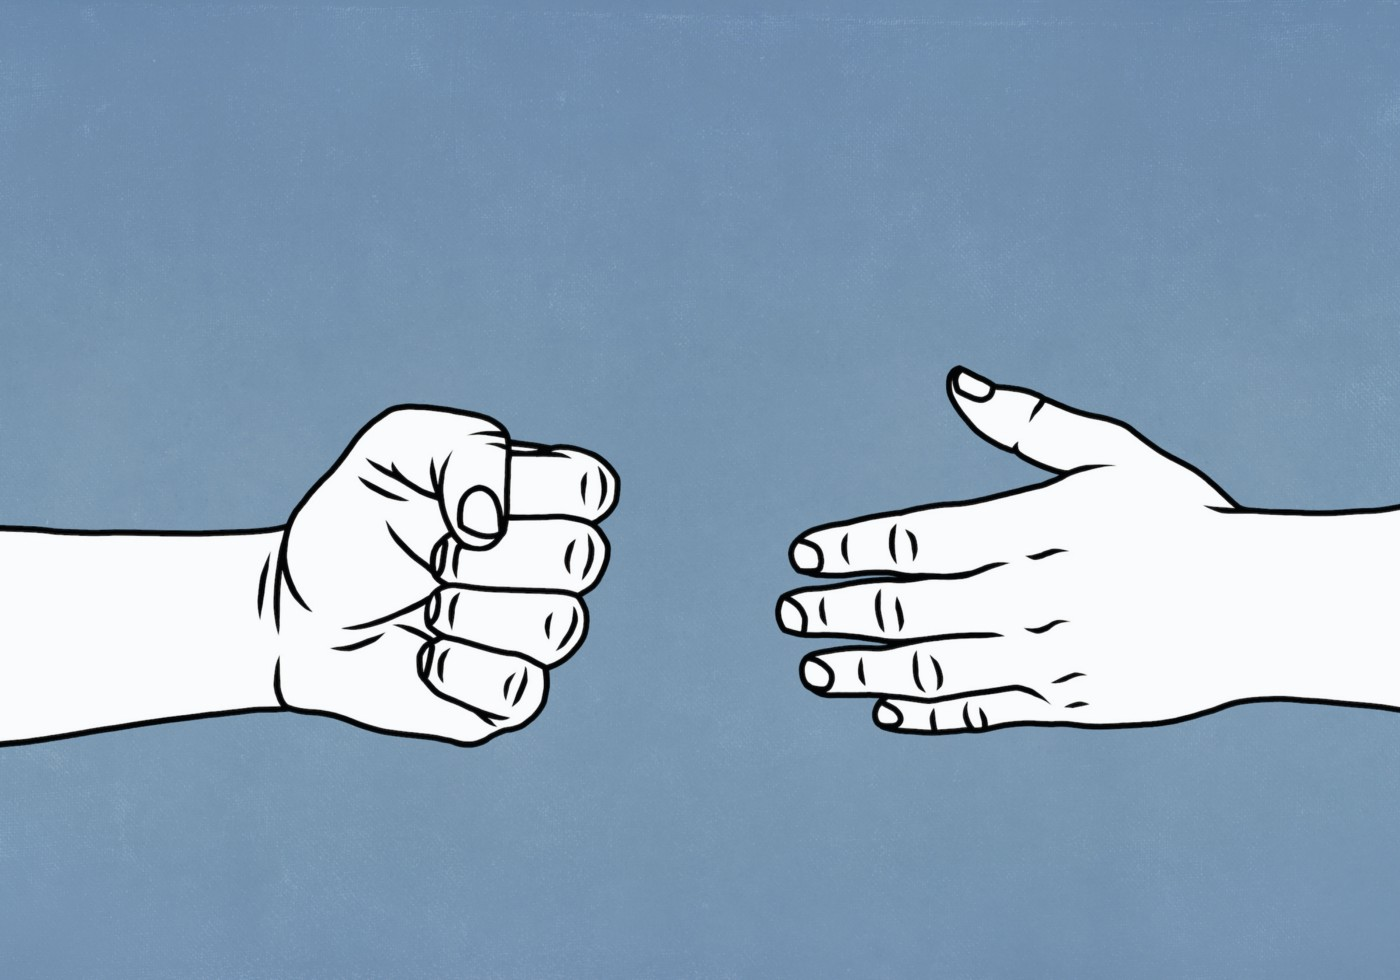 Illustration of a hand held out in a fist and an open hand extended toward it.